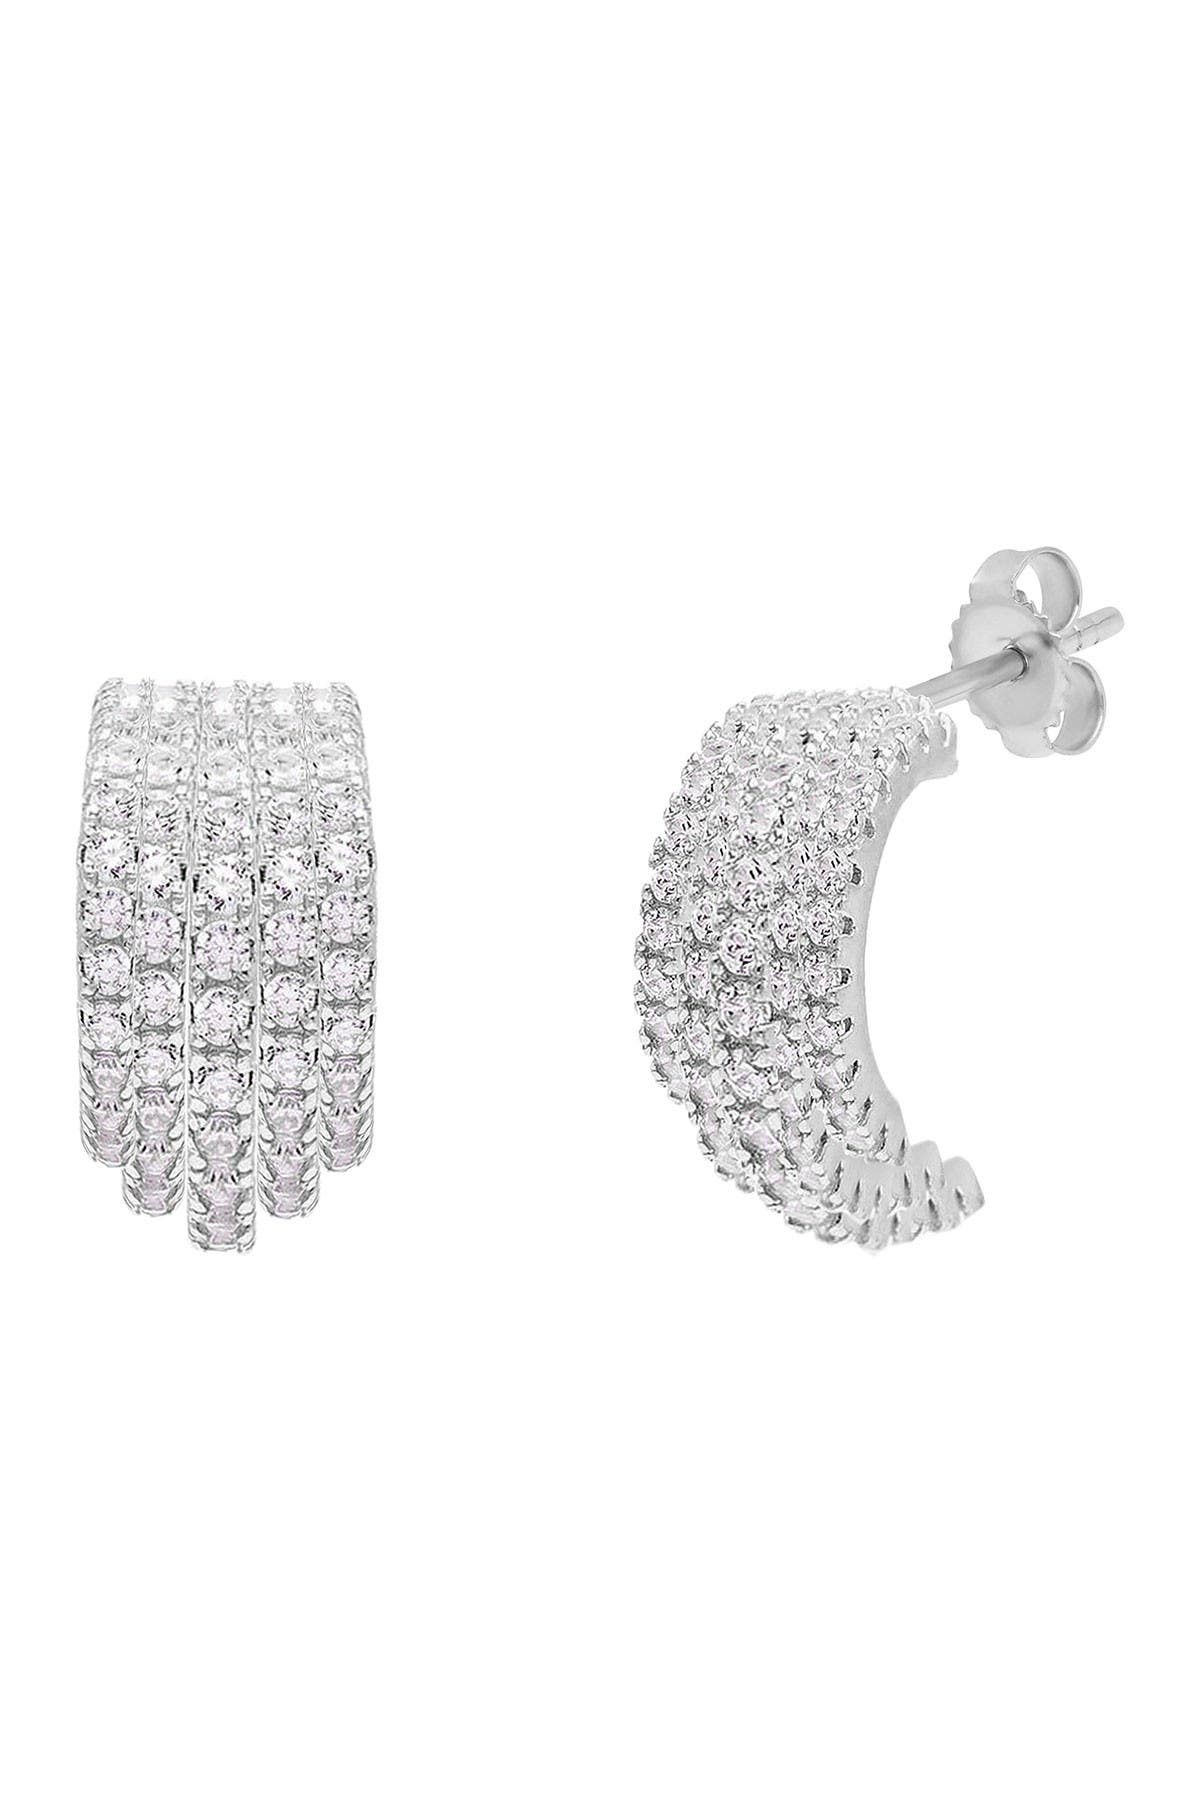 Image of Savvy Cie Sterling Silver Pave Cubic Zirconia Bombay Hoop Earrings